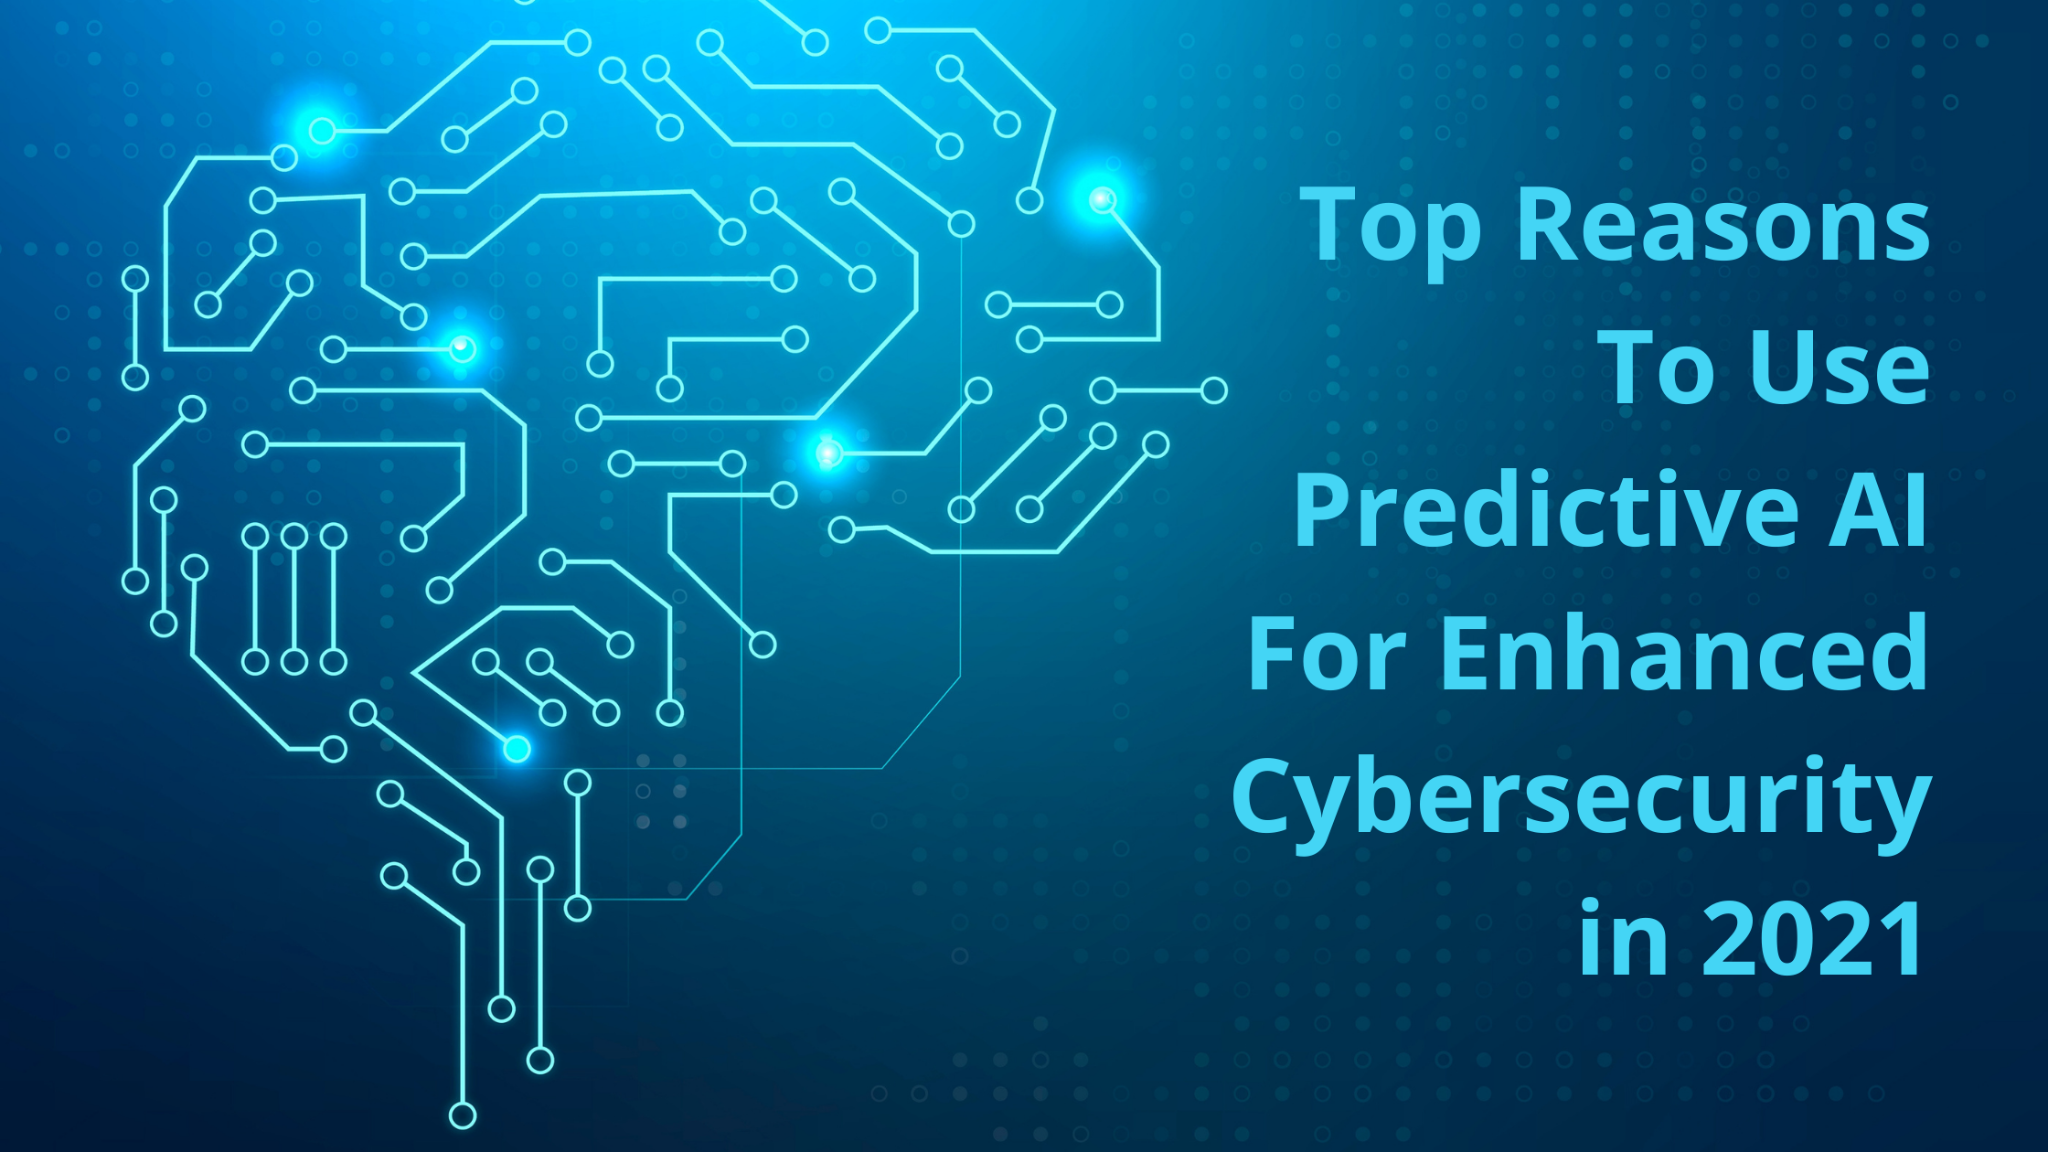 Top Reasons to use Predictive AI for Enhanced Cybersecurity in 2021)